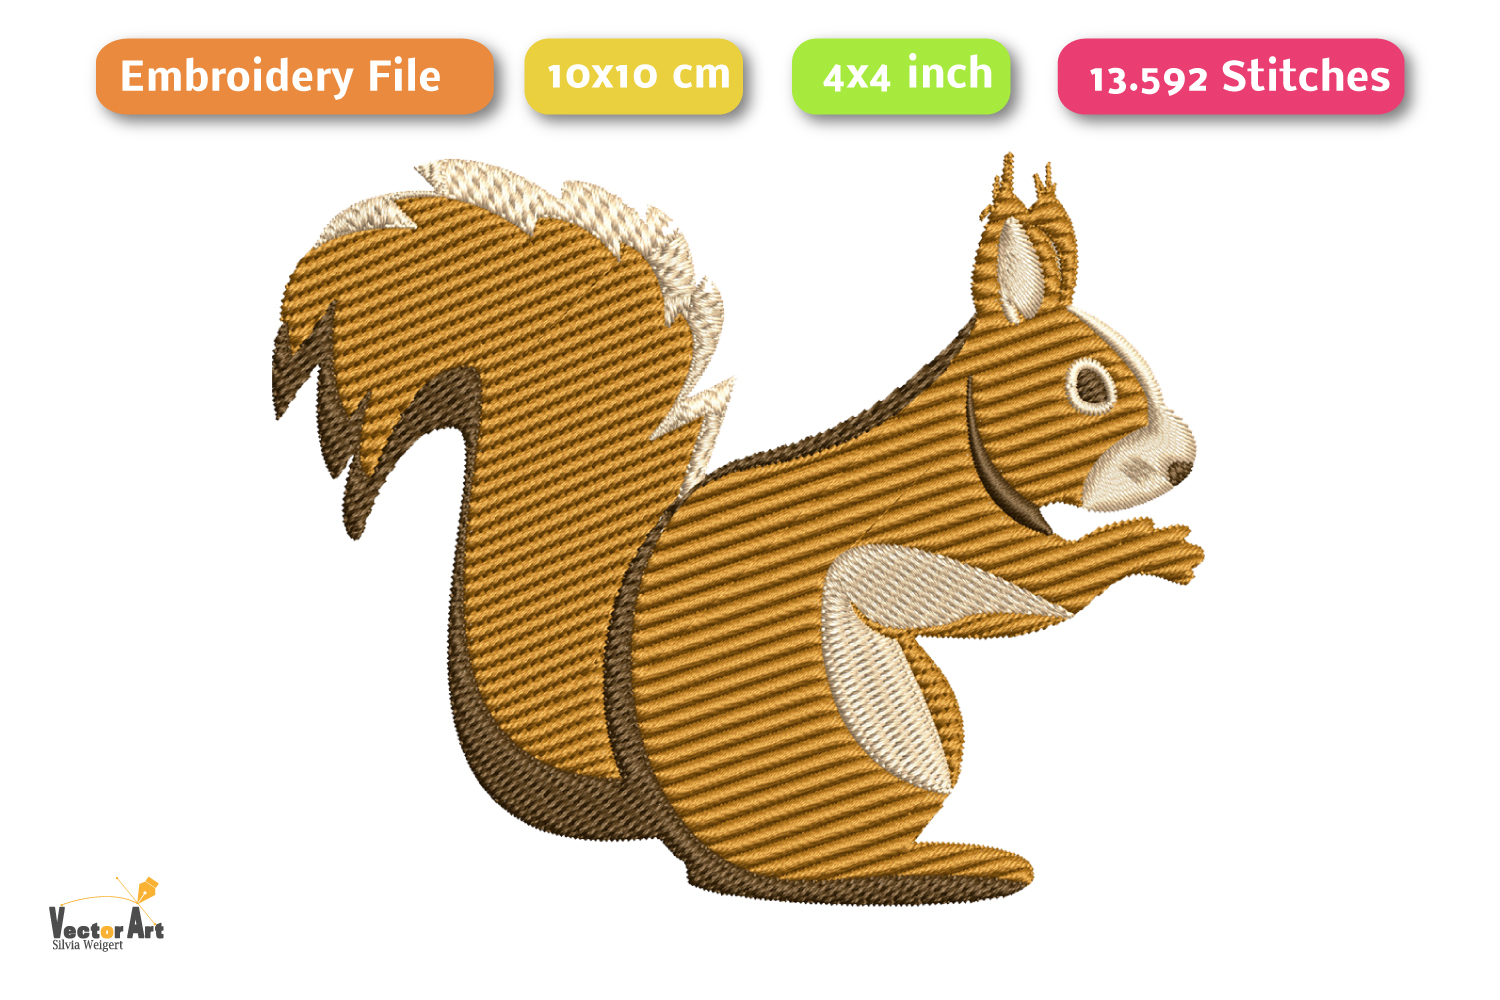 Squirrel - Embroidery File - 4x4 inch example image 2